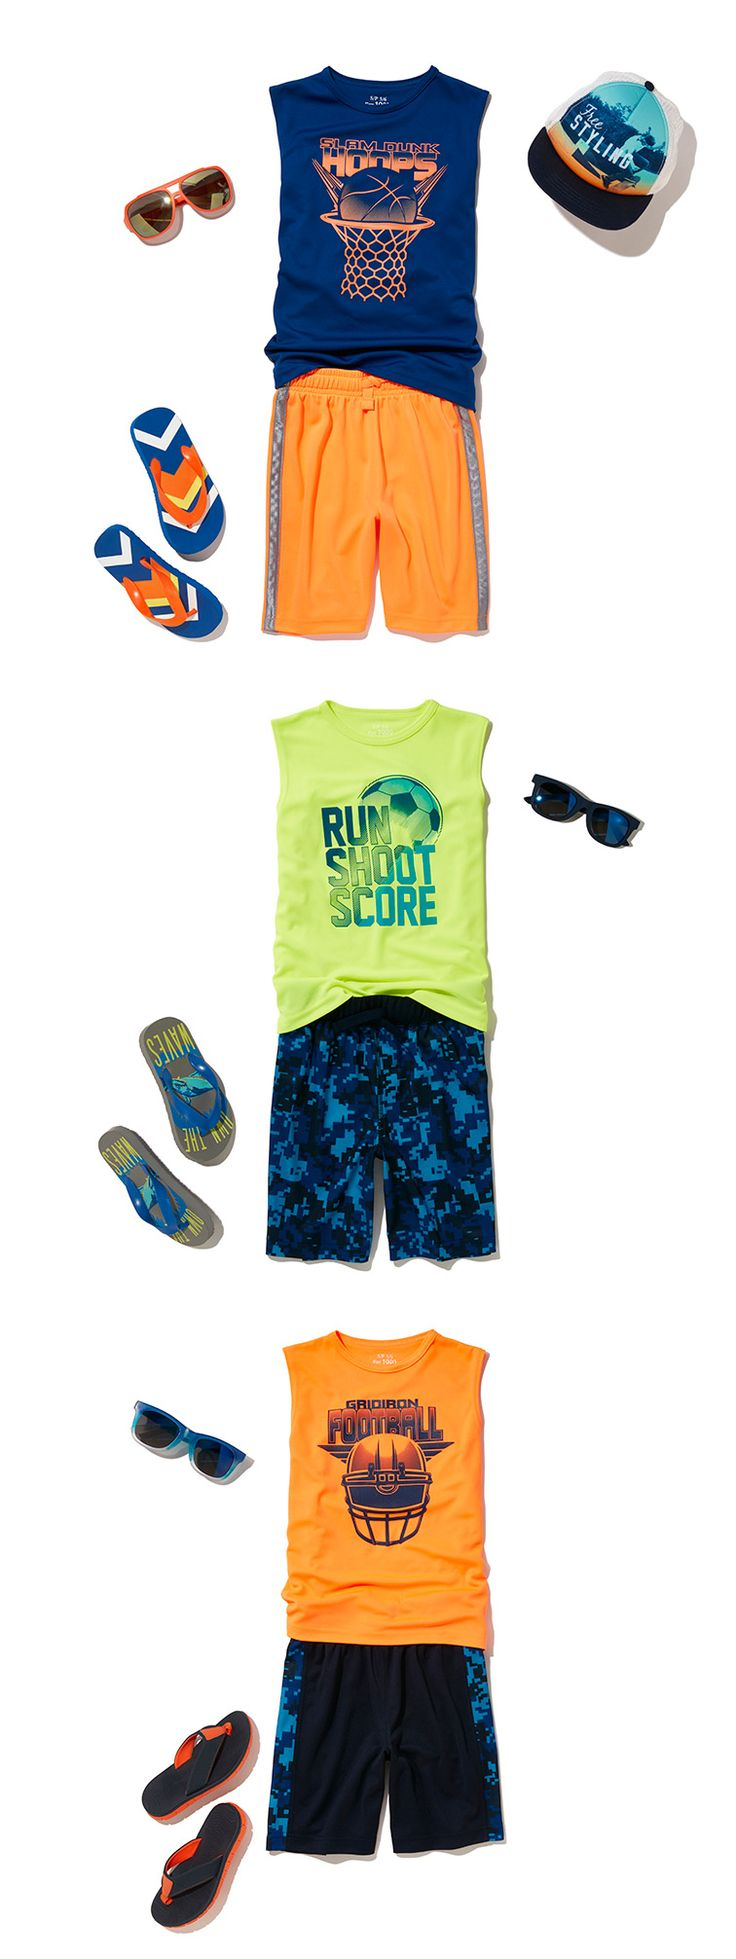 Boys' Clothing | Kids' Outfits | Active Wear | Graphic Tank | Printed Knit Shorts | Flip Flops | Sunglasses | Hat | The Children's Place